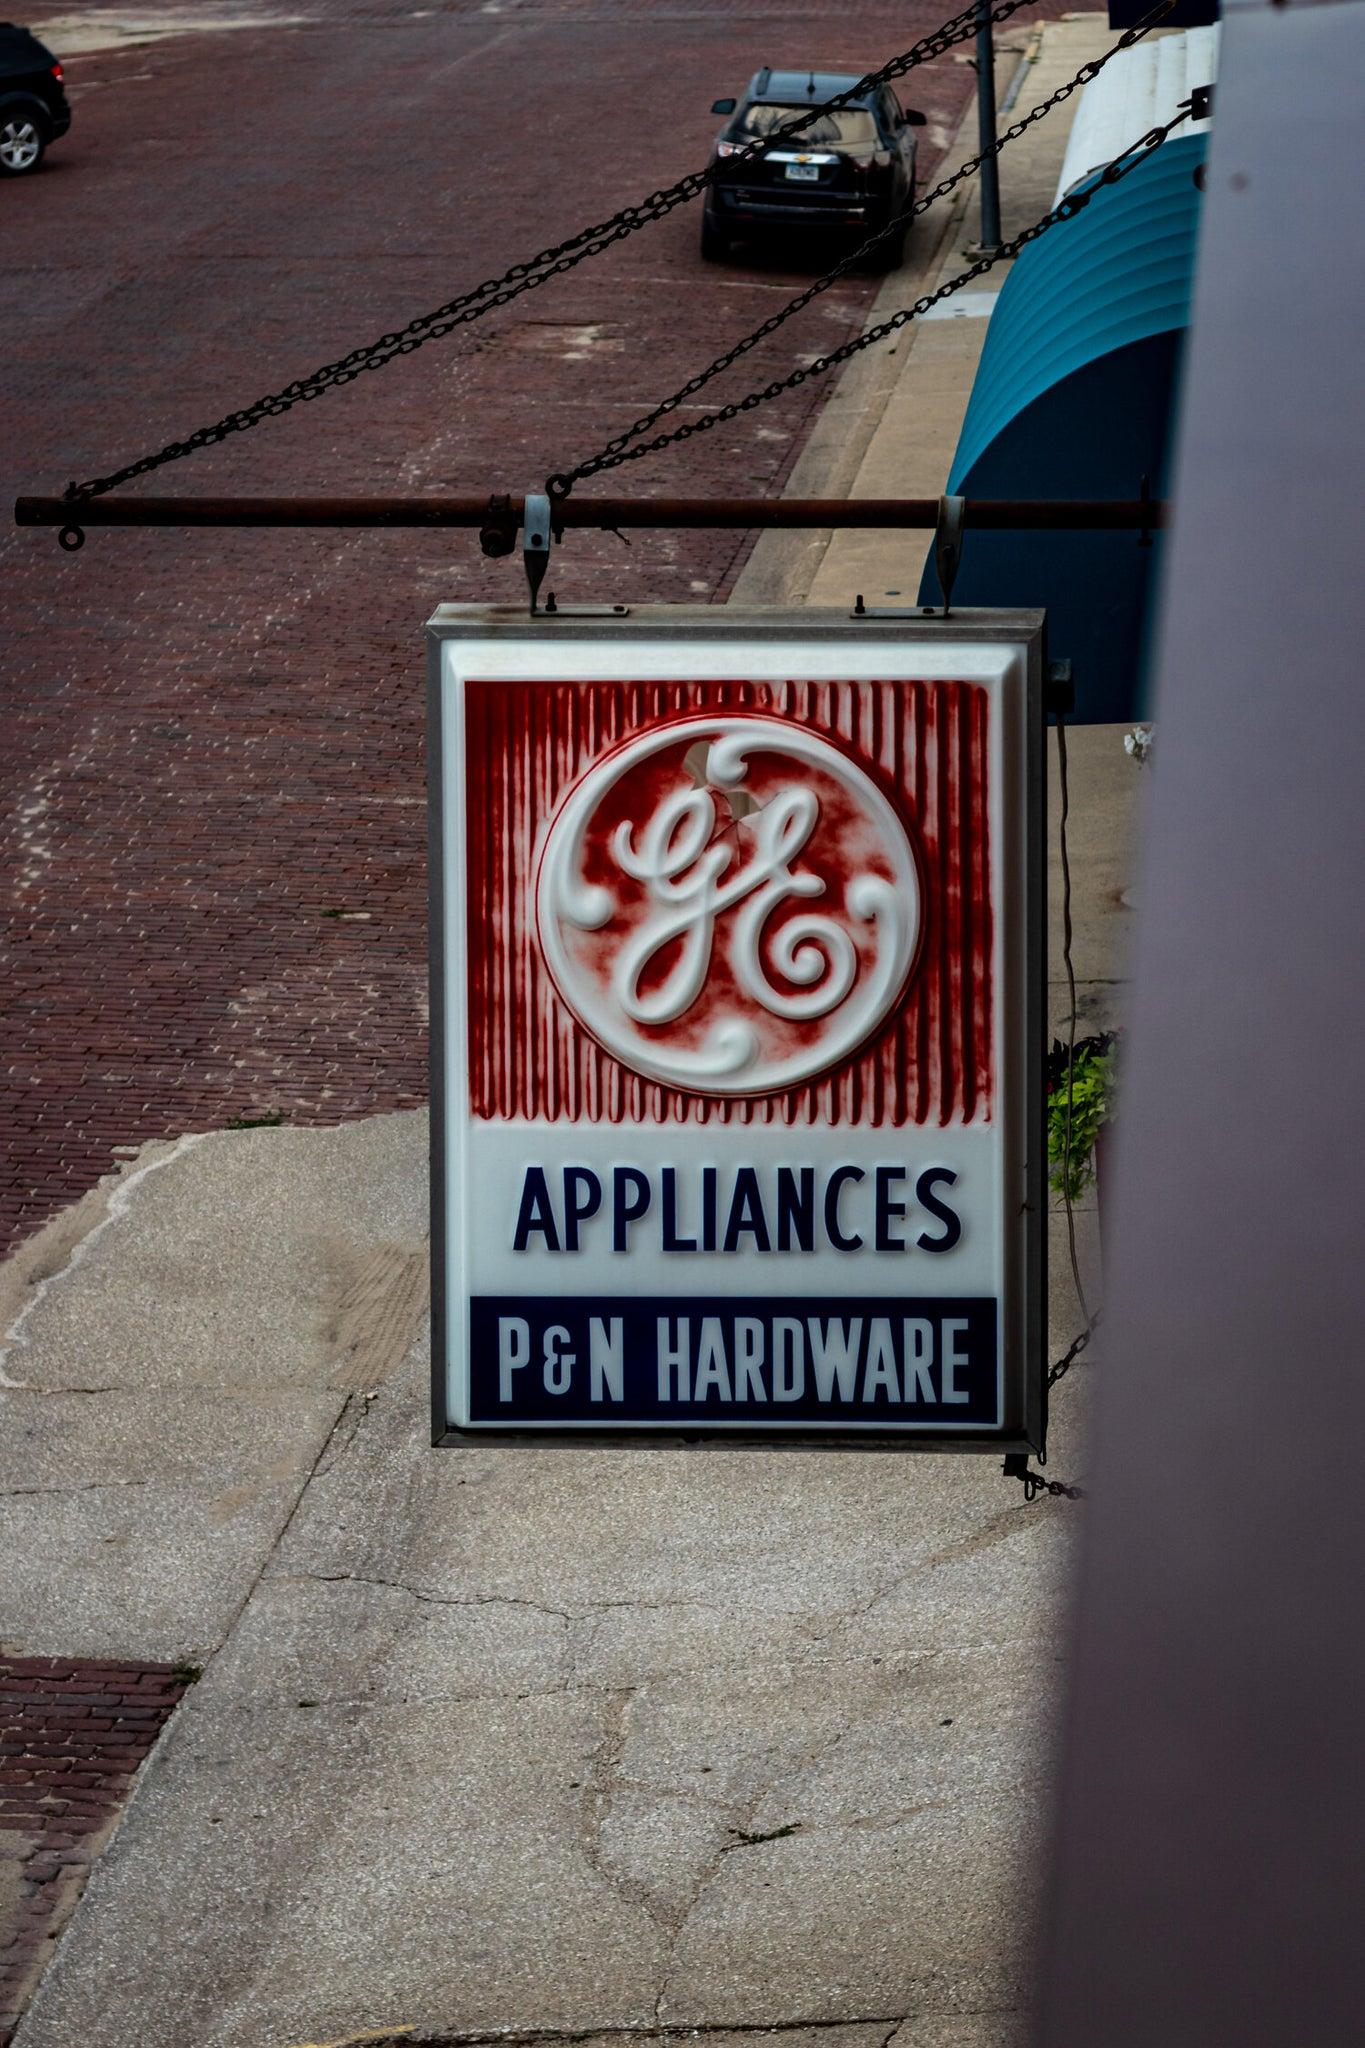 The old P&N hardware sign outside the building